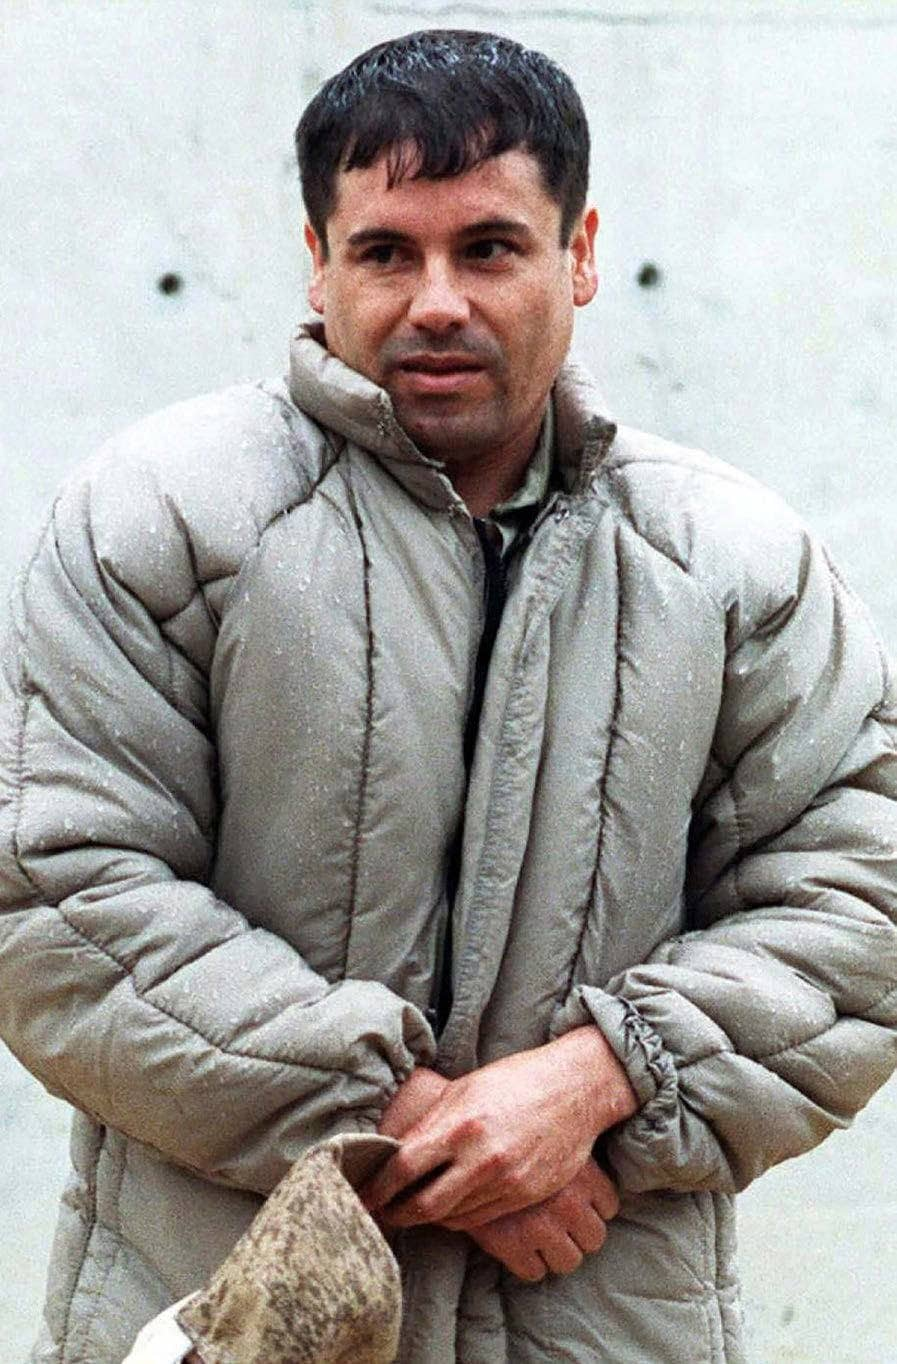 THE TRIAL OF MEXICO'S DEADLIEST DRUG LORD